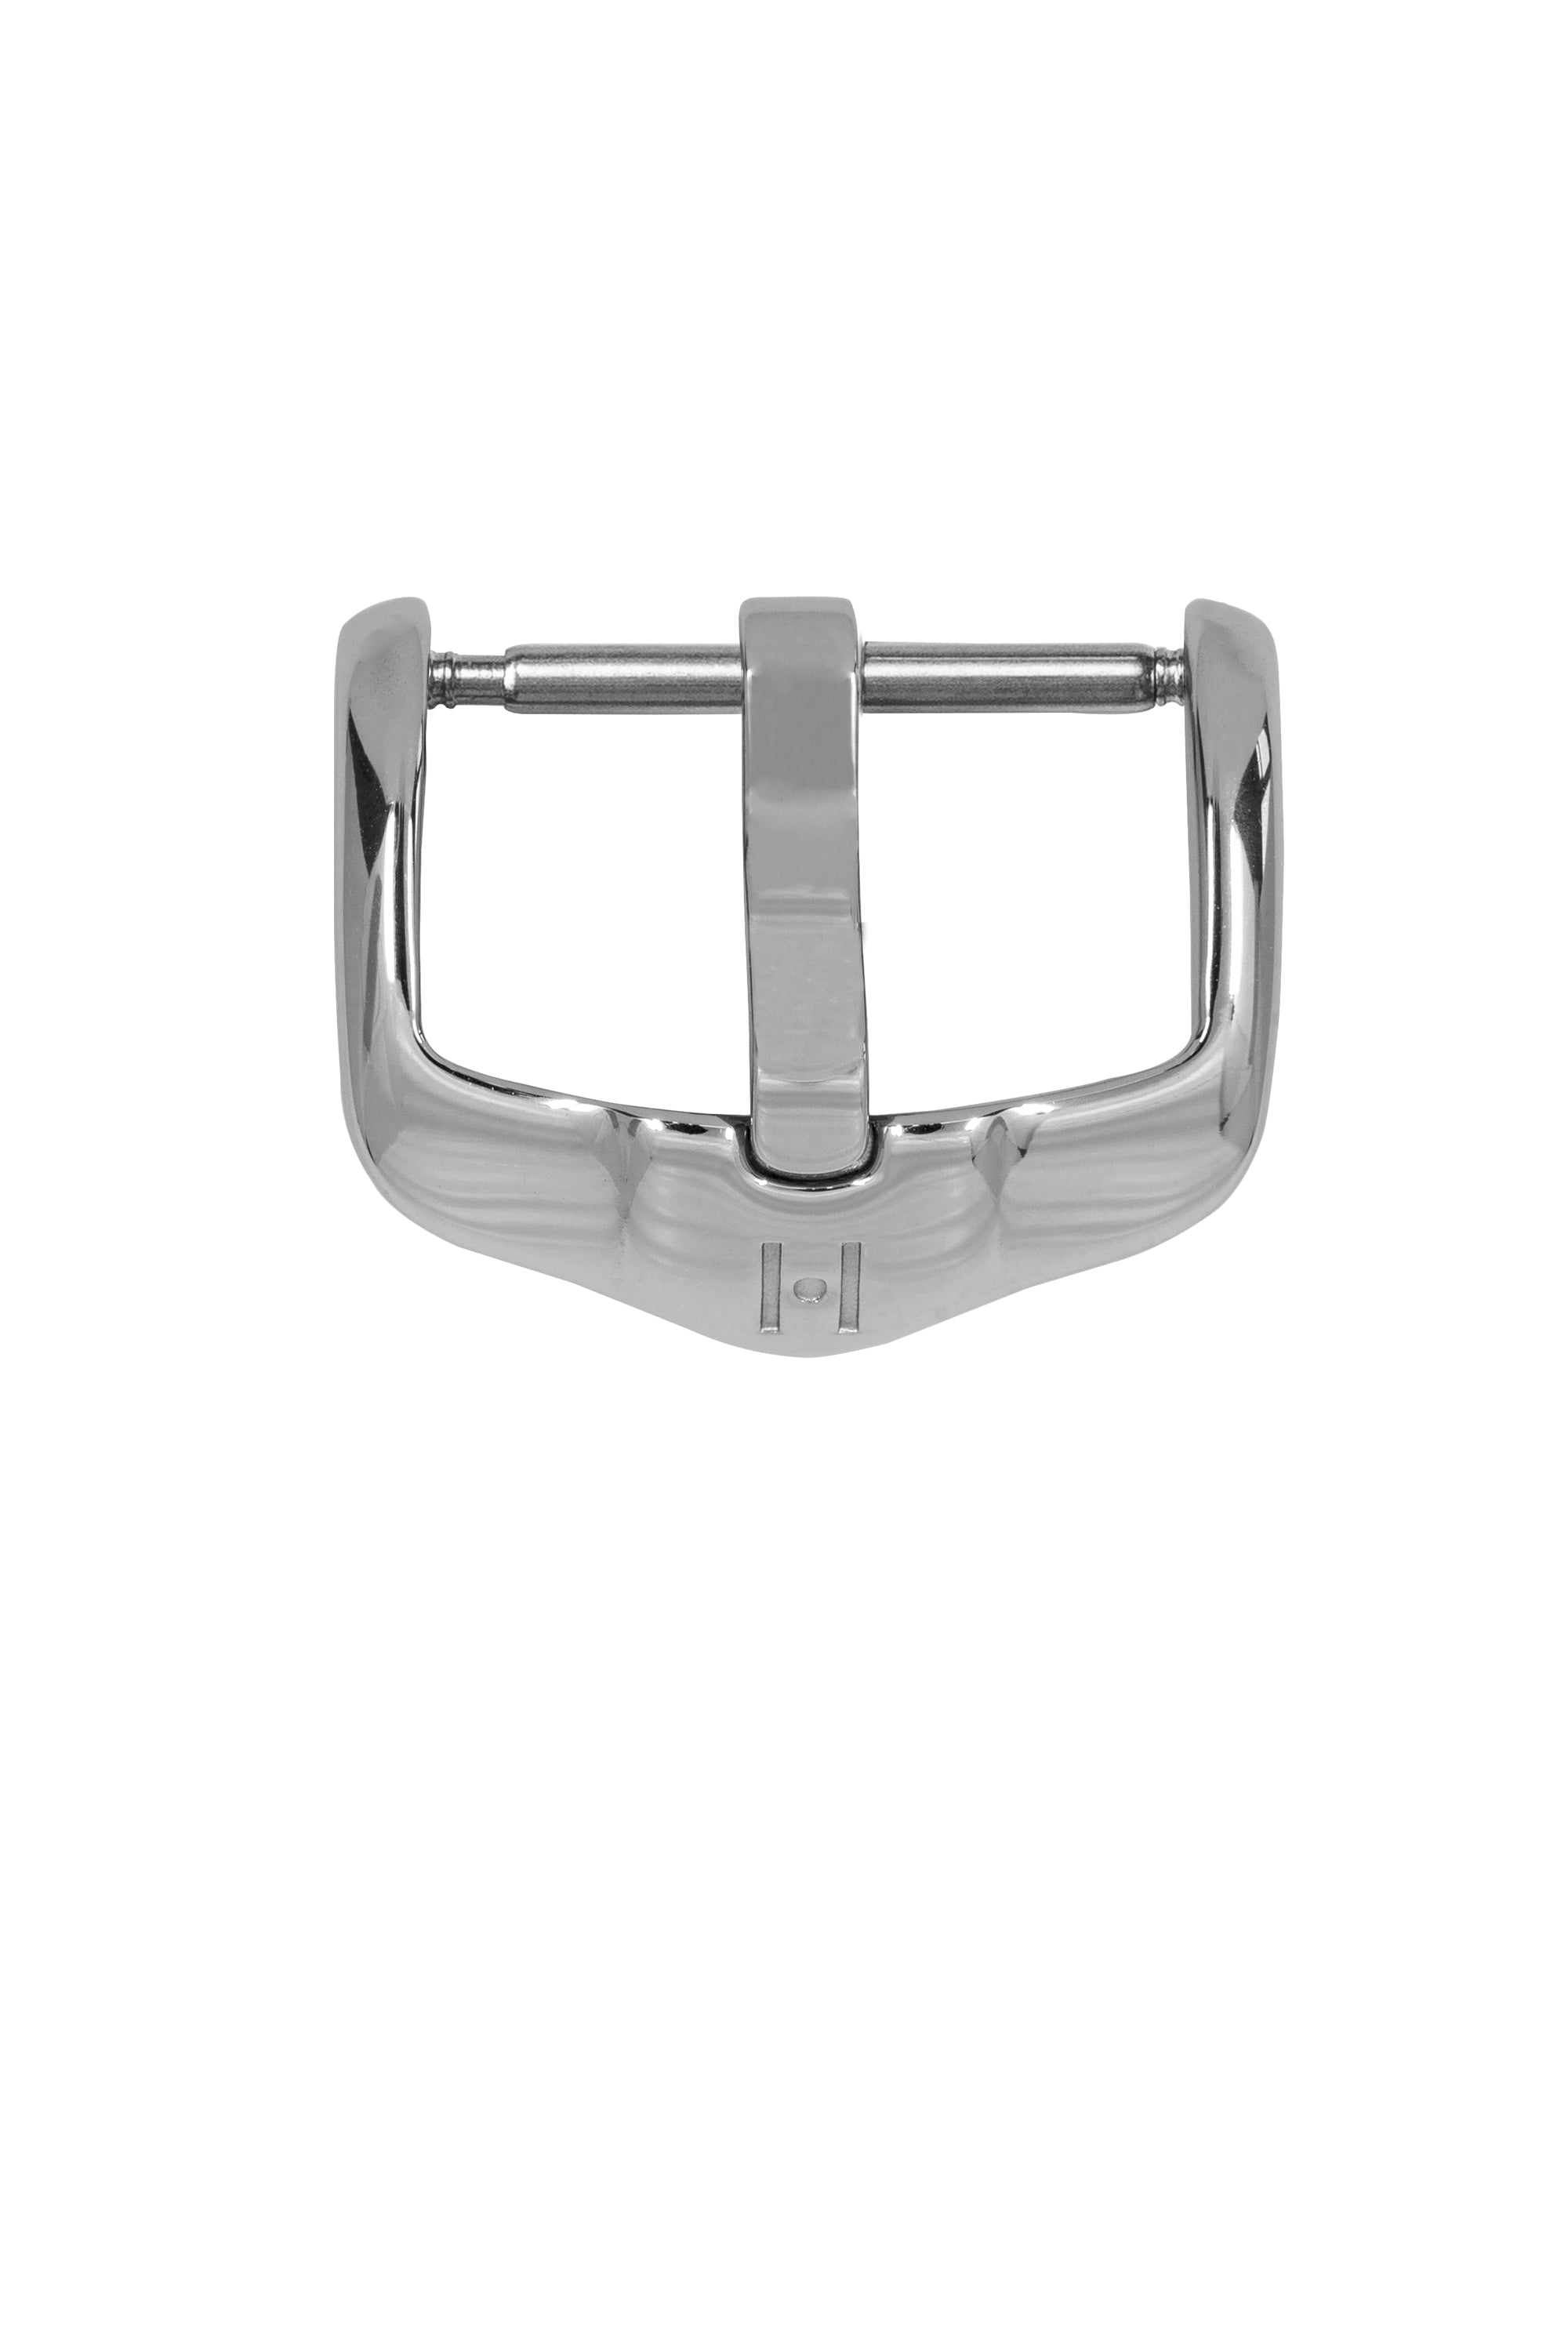 Hirsch H-Active Polished Stainless Steel Buckle in Silver-Tone